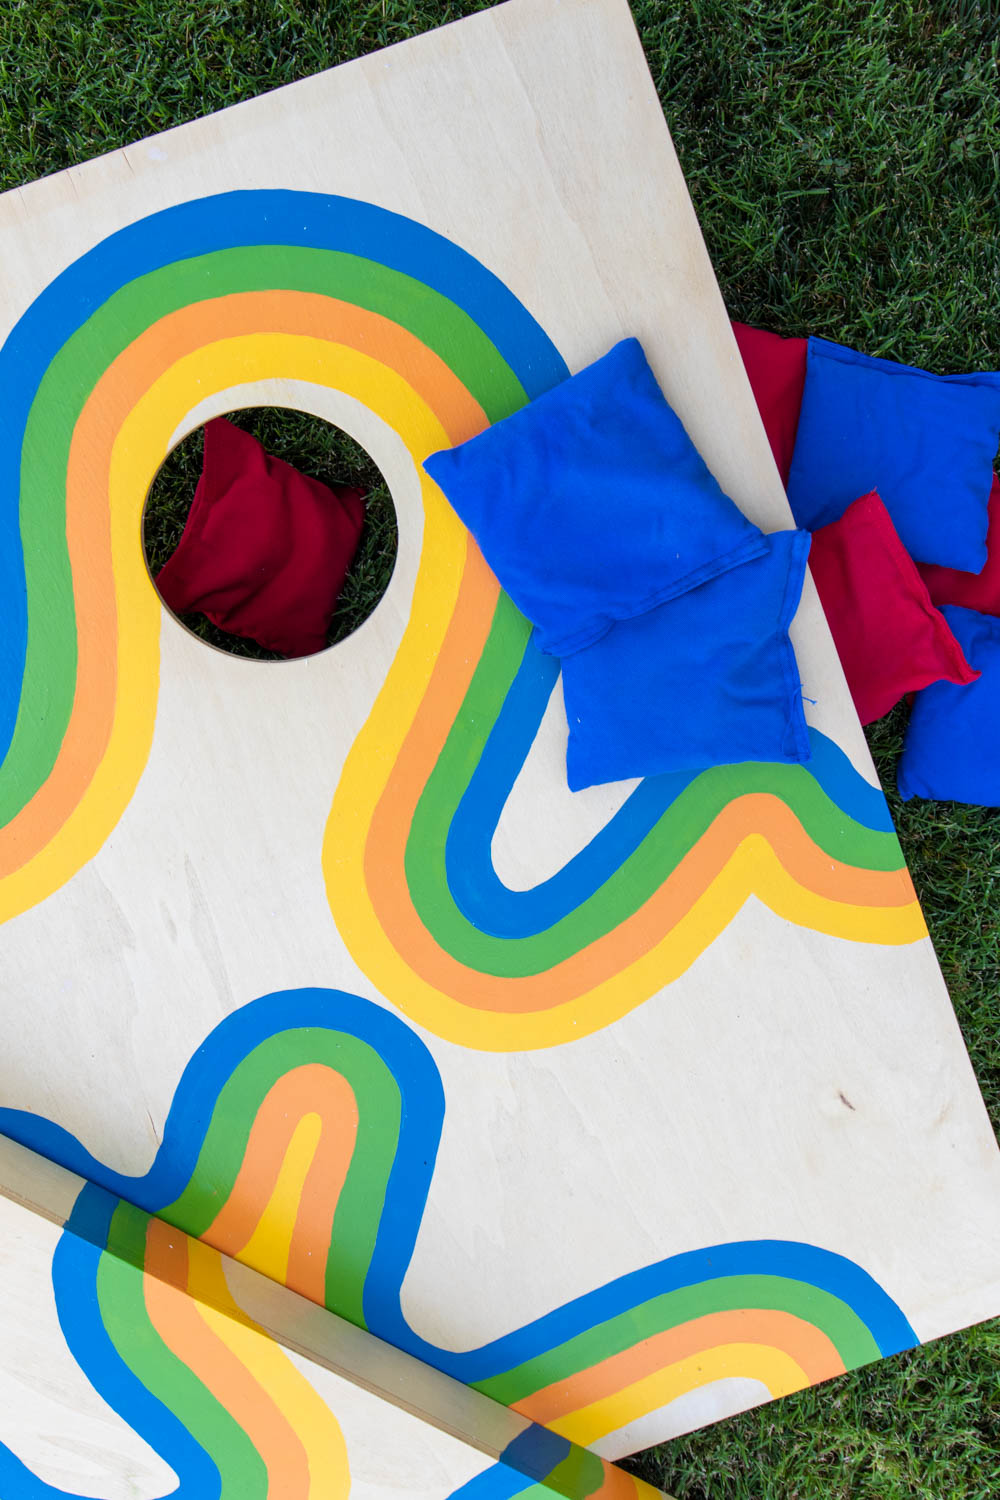 cornhole makeover in grass with beanbags